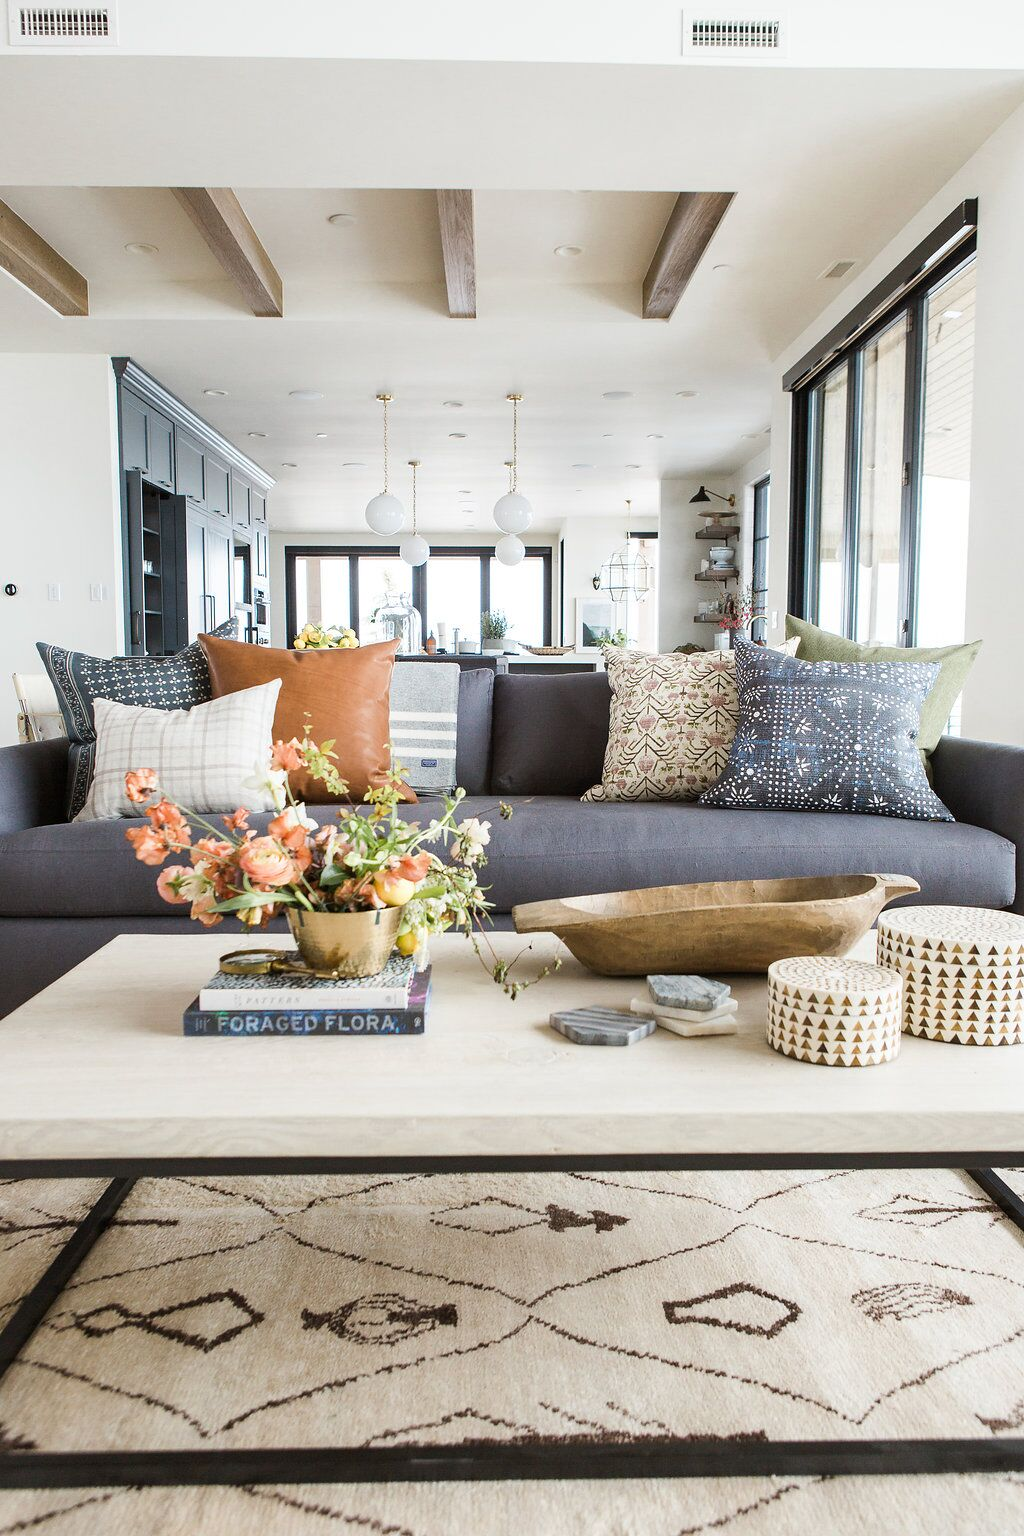 How To Style Your Throw Pillows